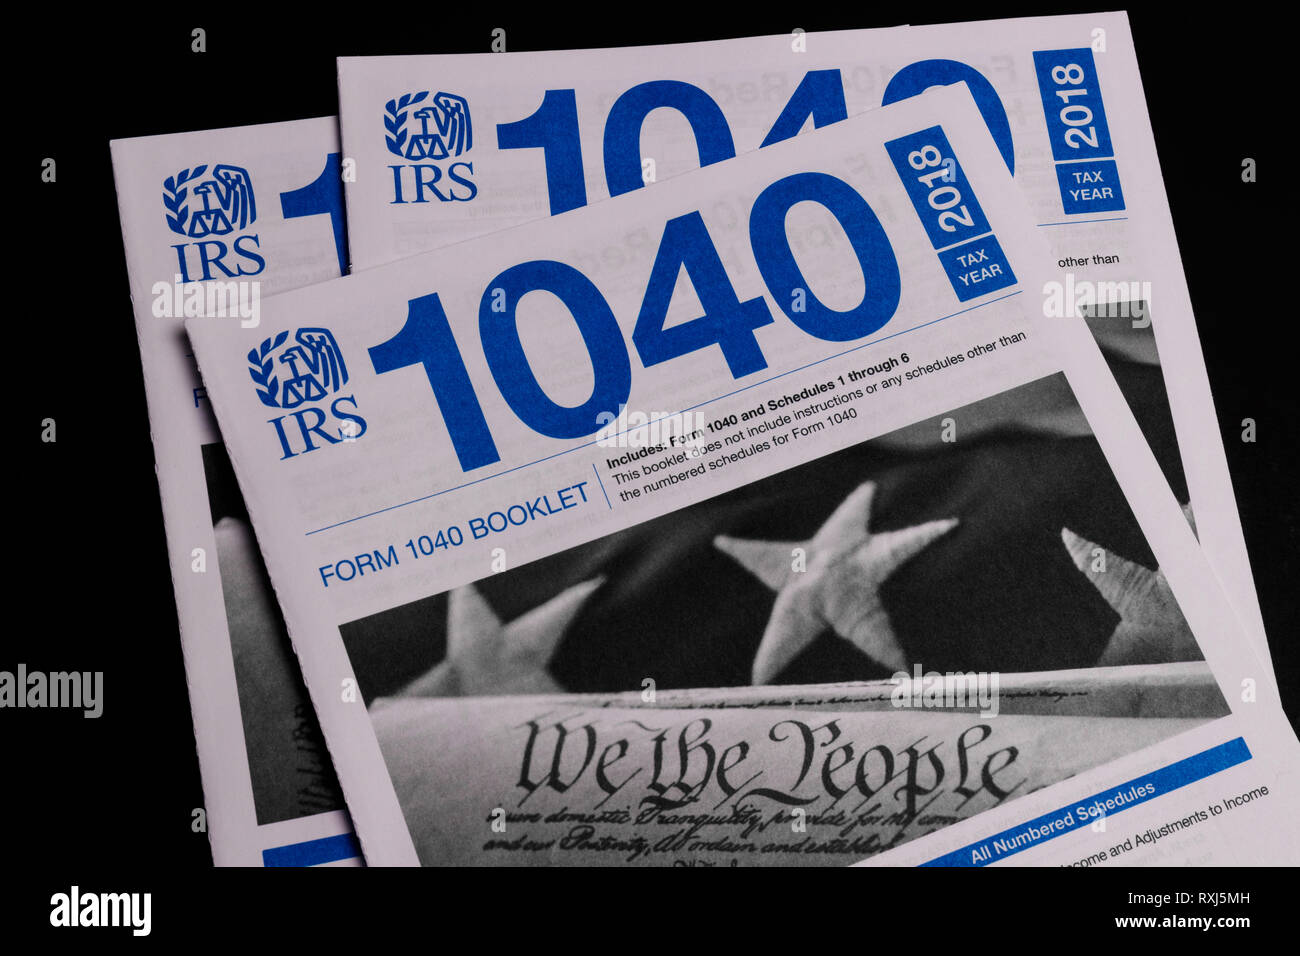 Irs Forms Stock Photos & Irs Forms Stock Images - Alamy